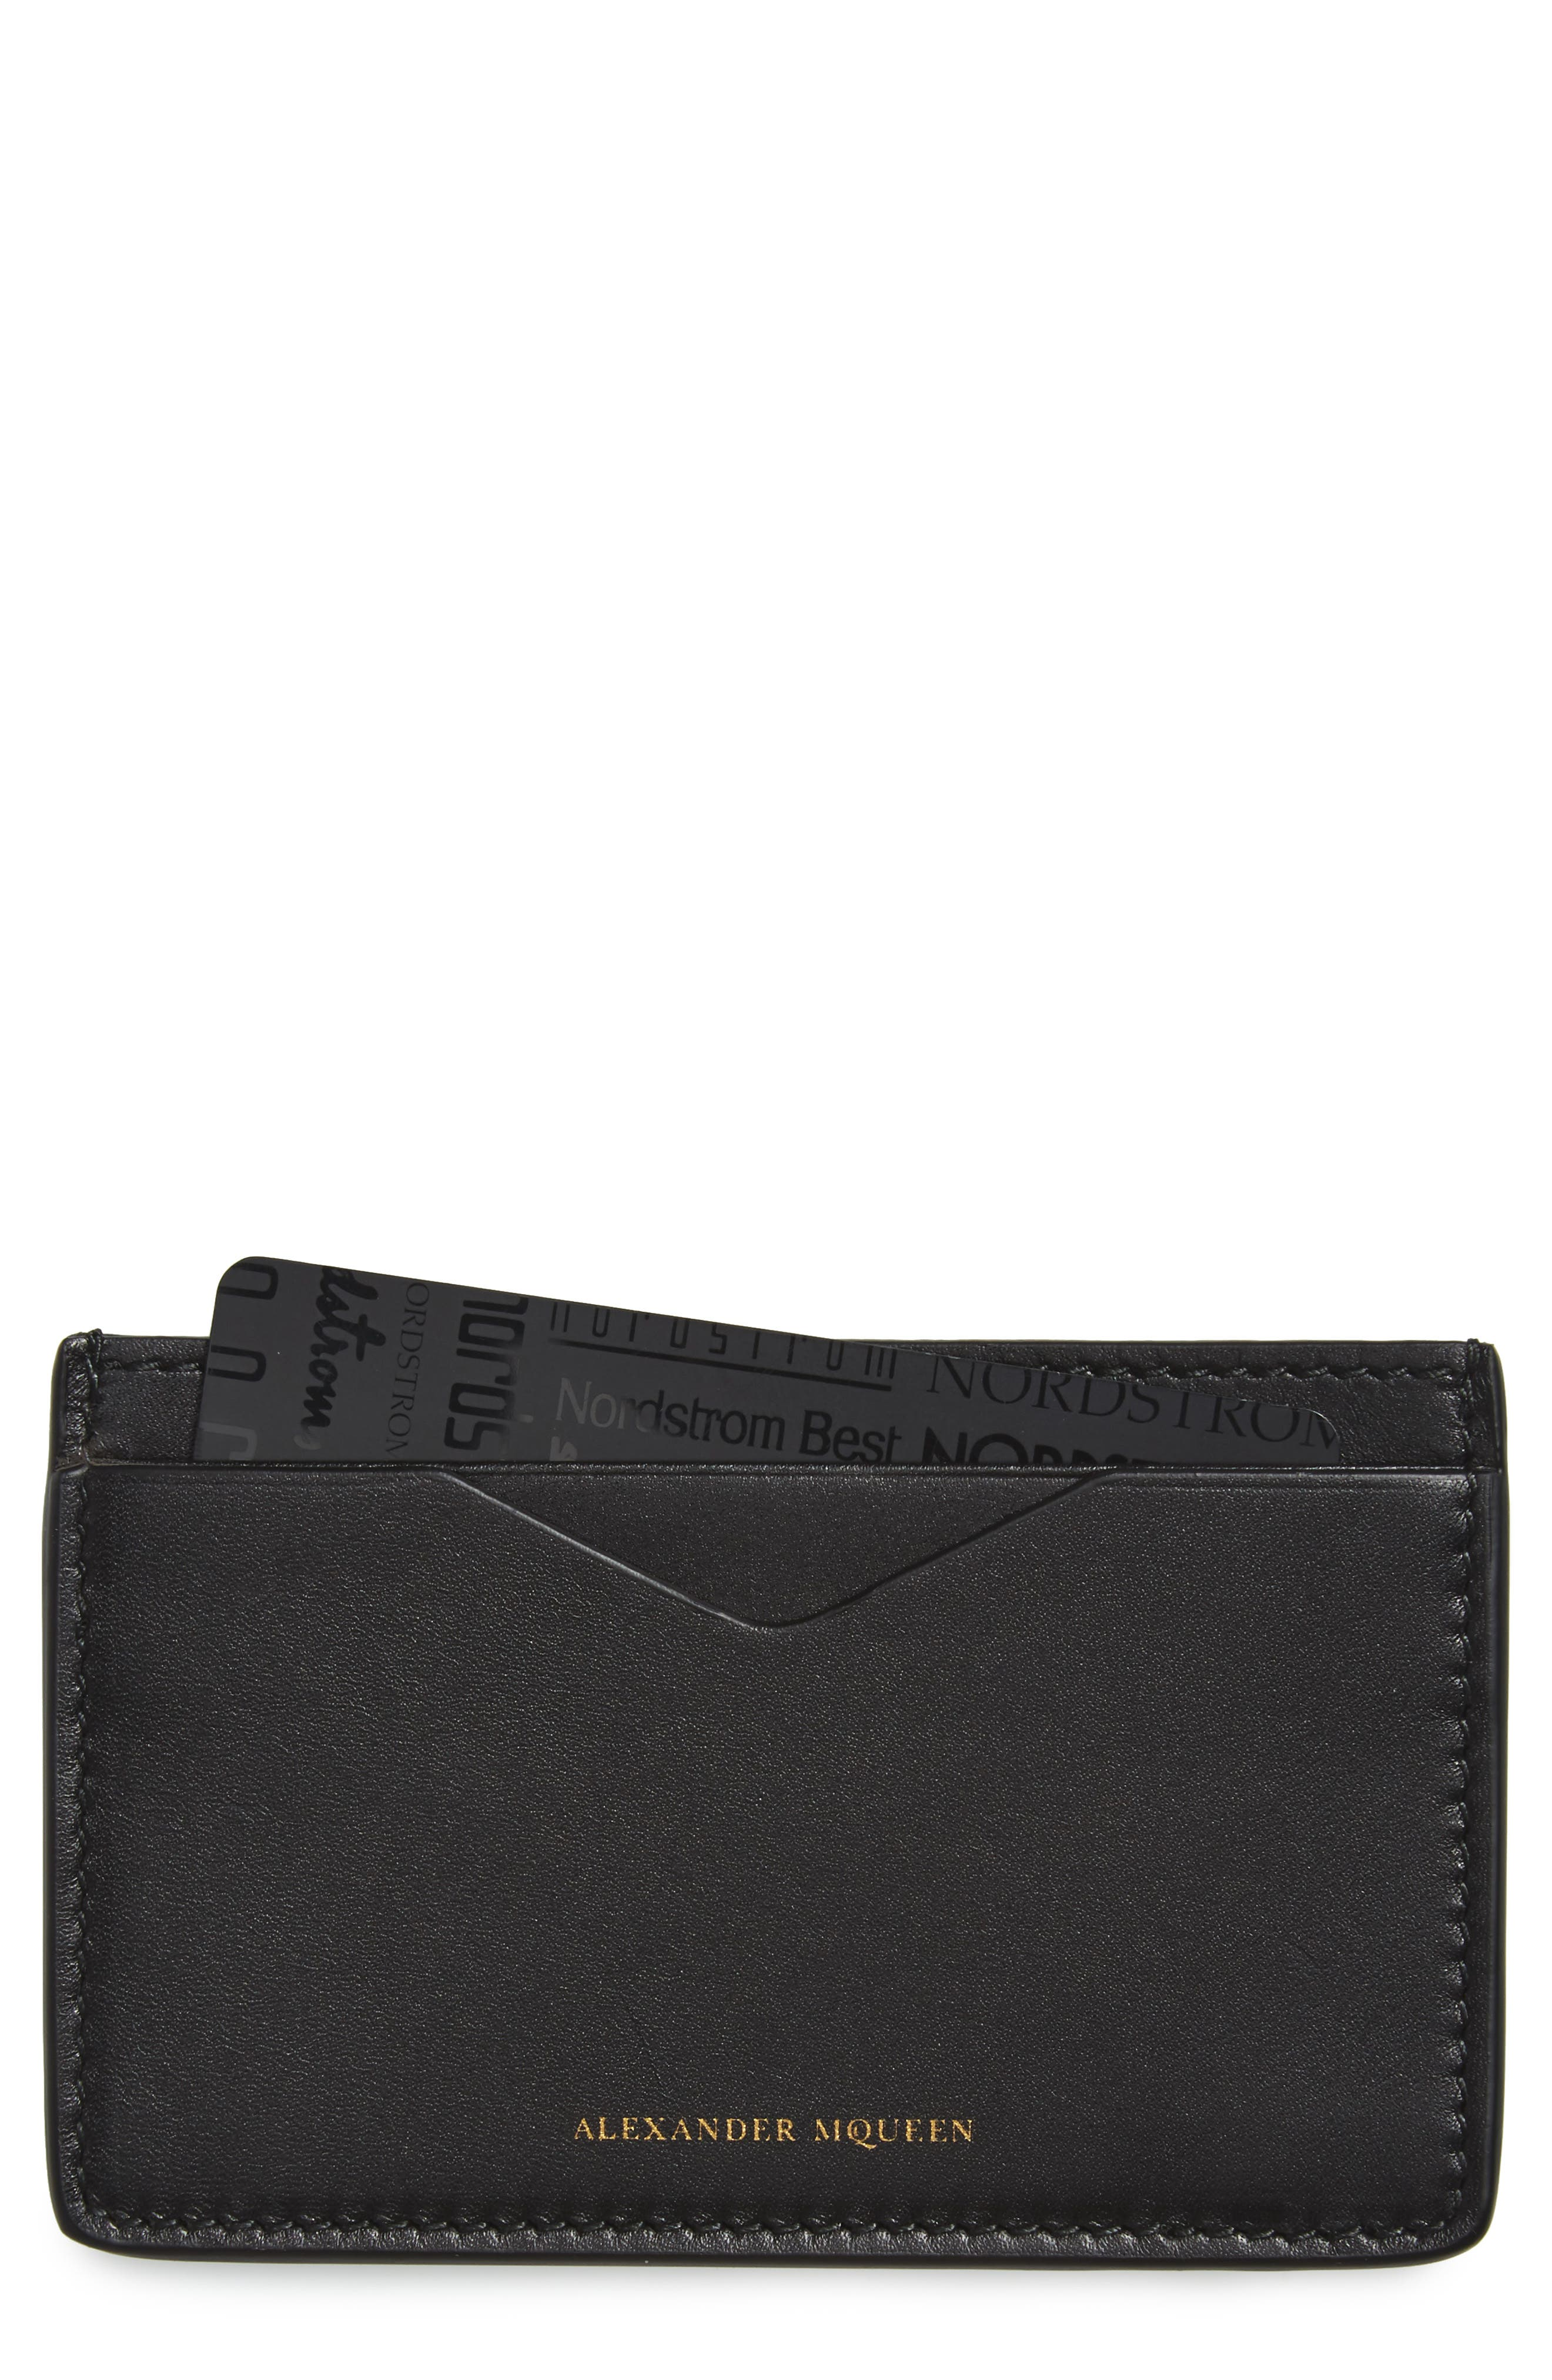 Alternate Image 1 Selected - Alexander McQueen Leather Card Case